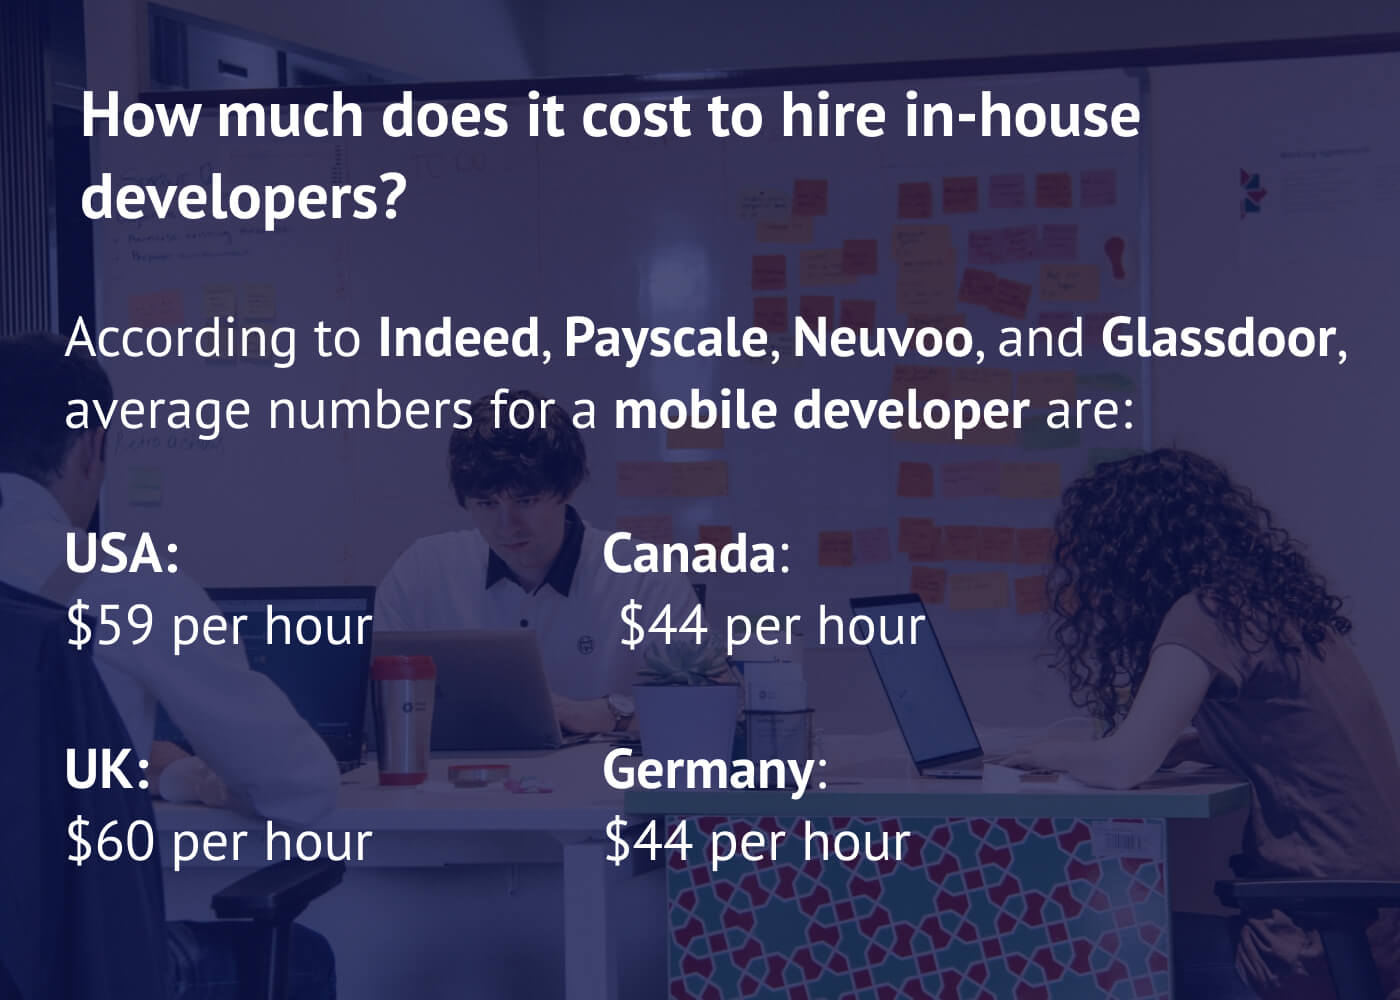 How much does it cost to hire in-house developers